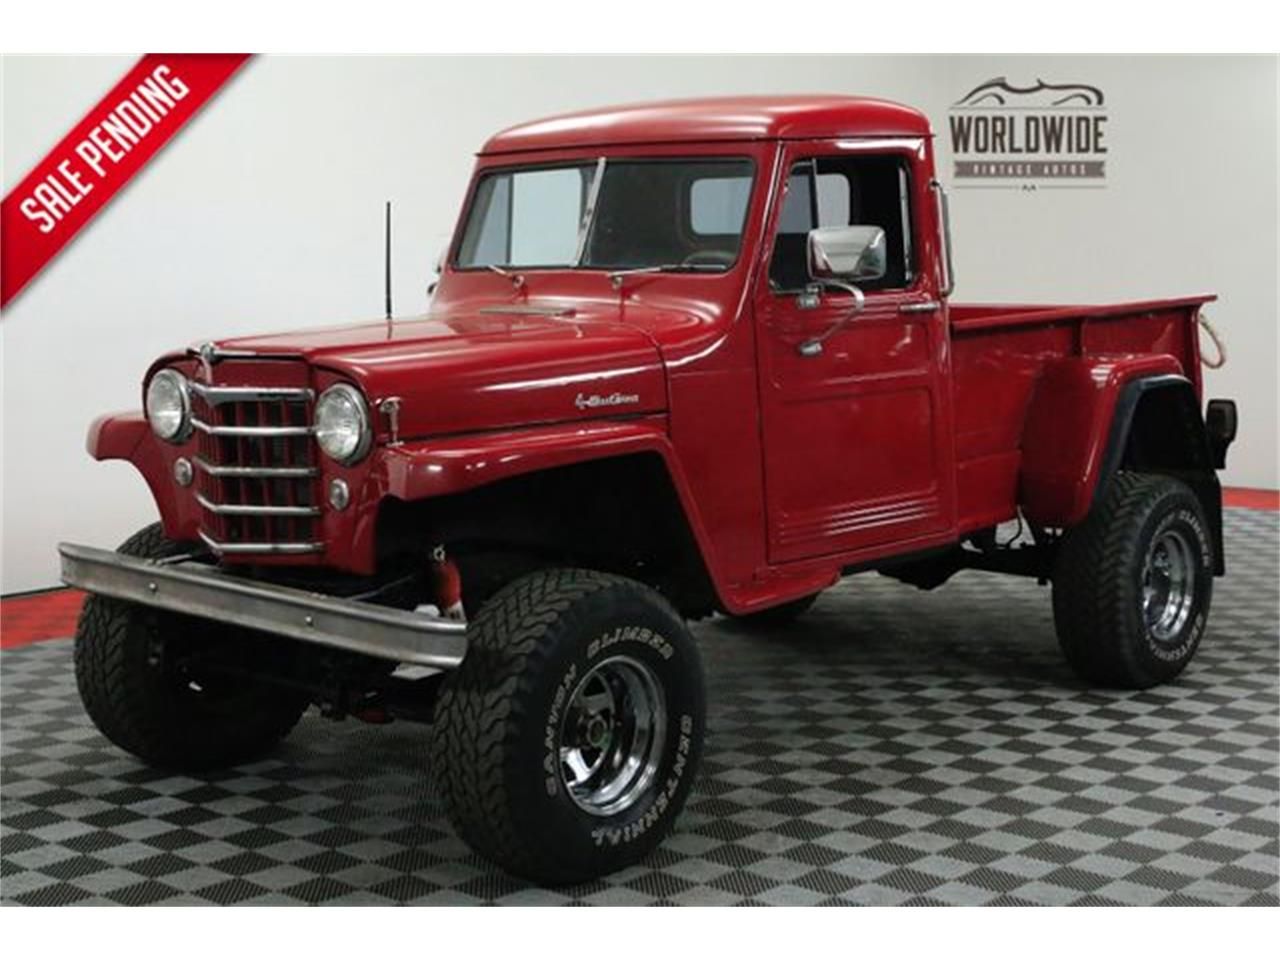 Willys Jeep Truck For Sale >> 1952 Jeep Willys For Sale Classiccars Com Cc 1075987